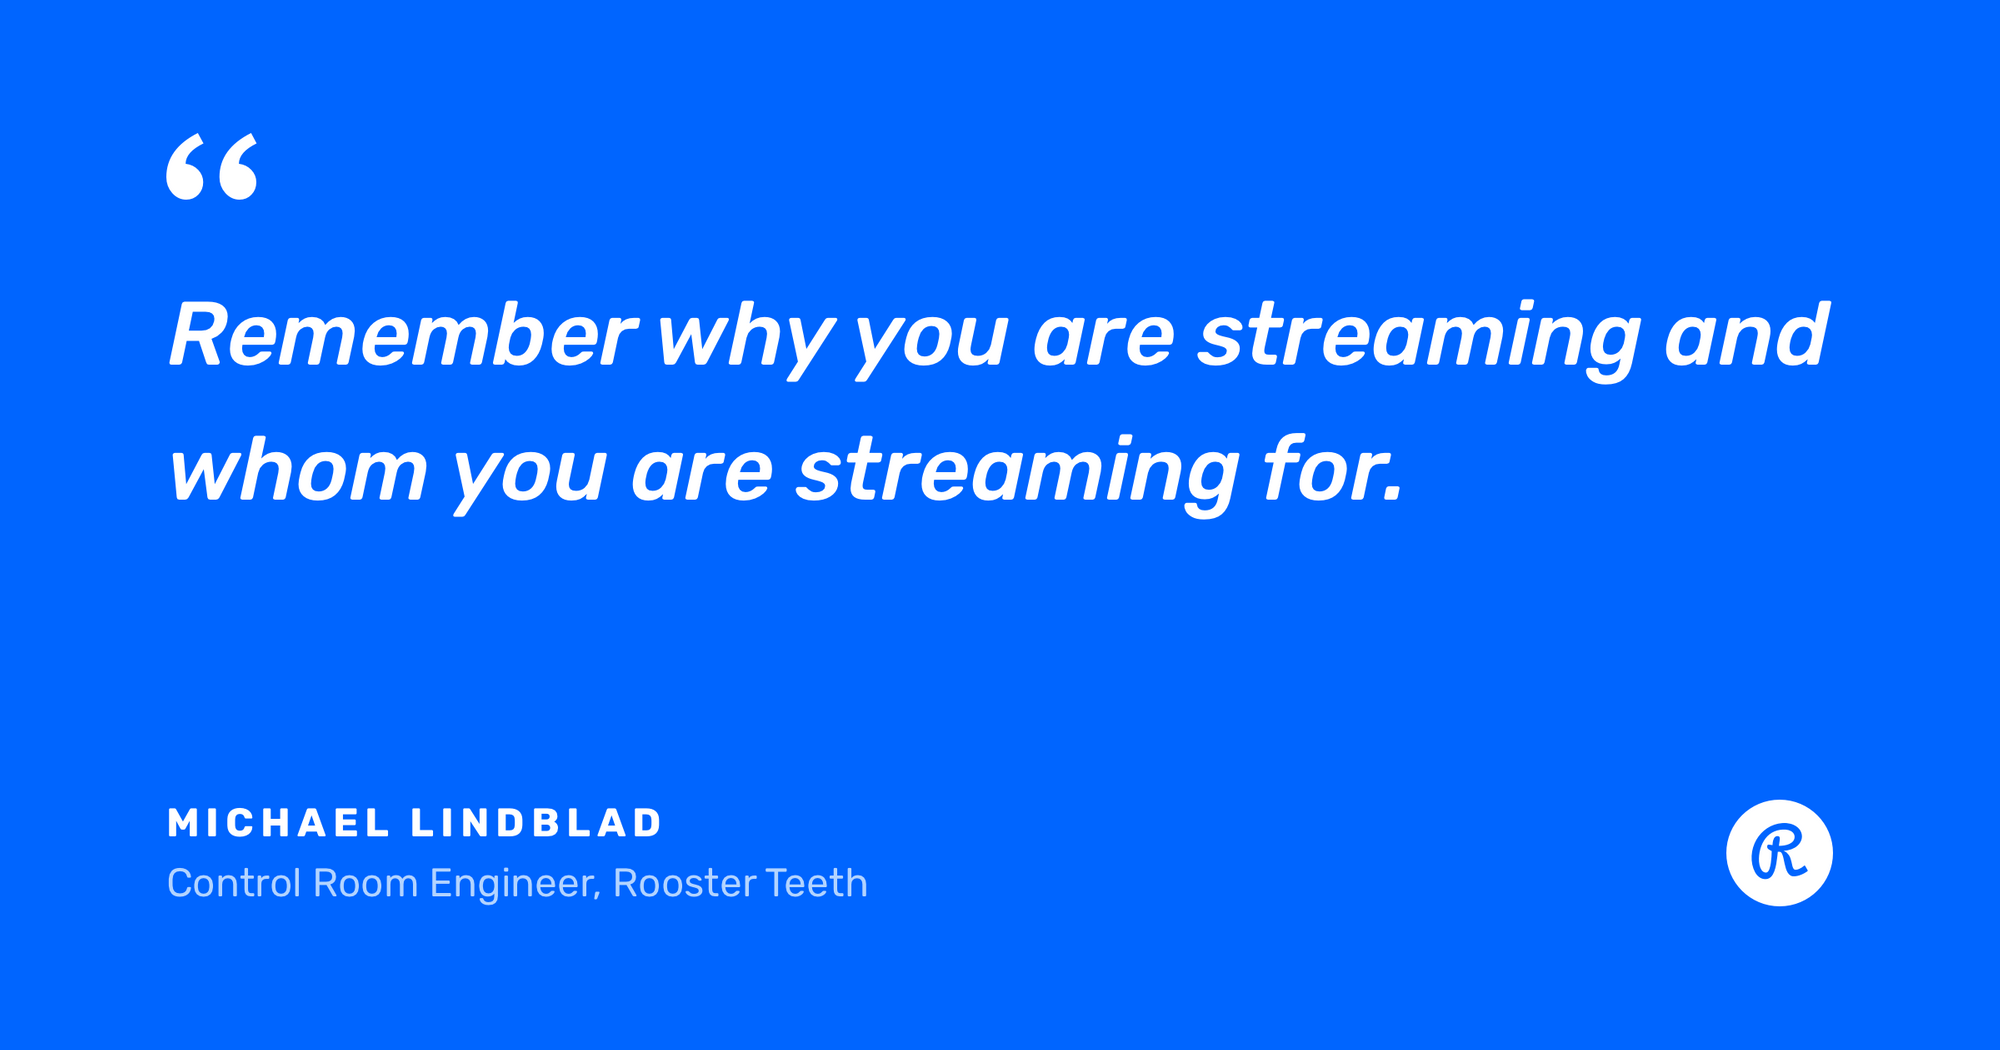 Remember why you are streaming and whom you are streaming for